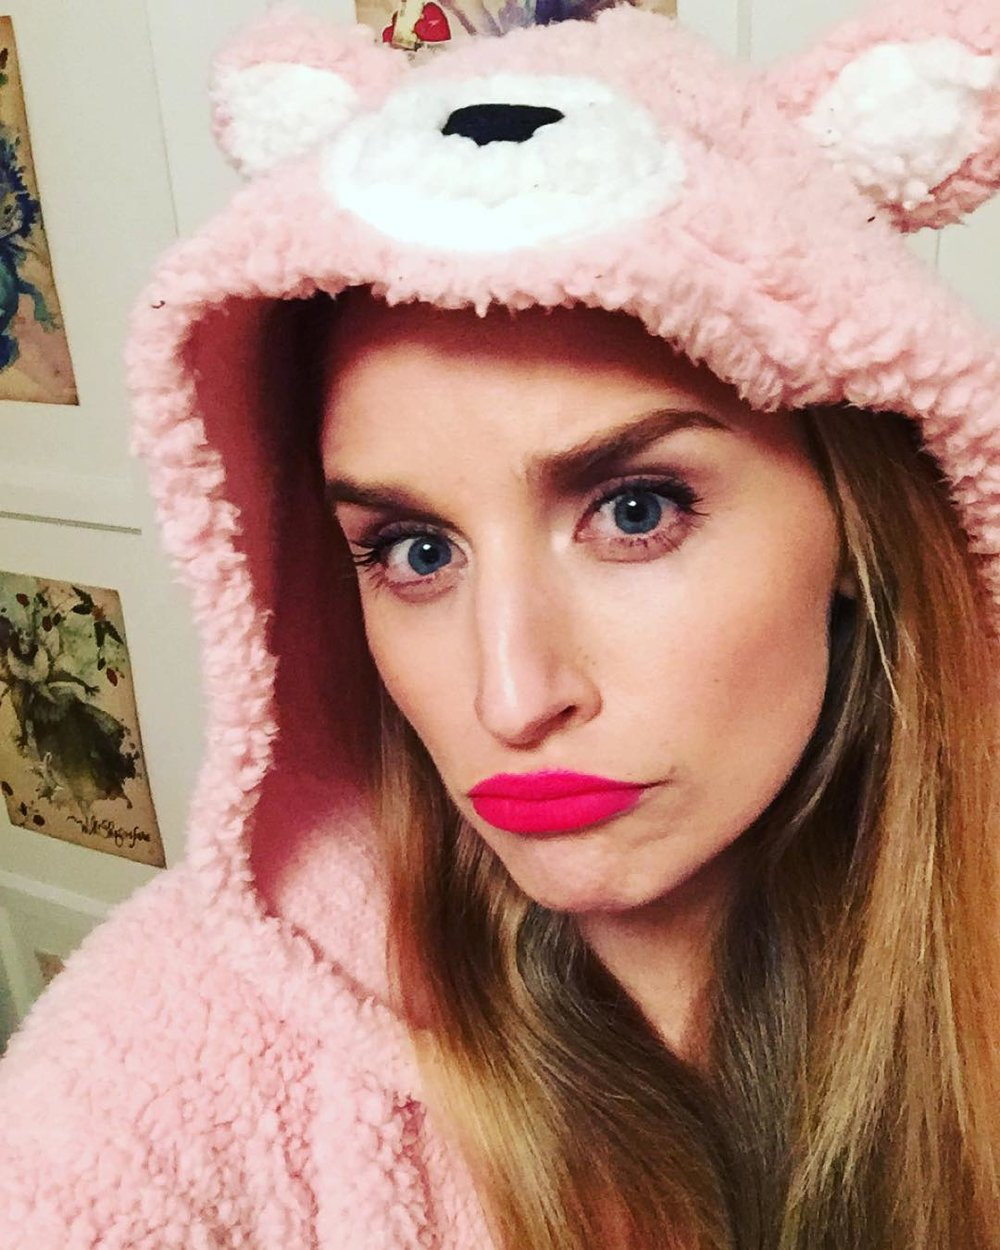 How to best deny #monday 's existence … Do #la 's version of snuggling … Must be in a #onesie w #fullmakeup #prettyinpink #twomodelsdo #editing